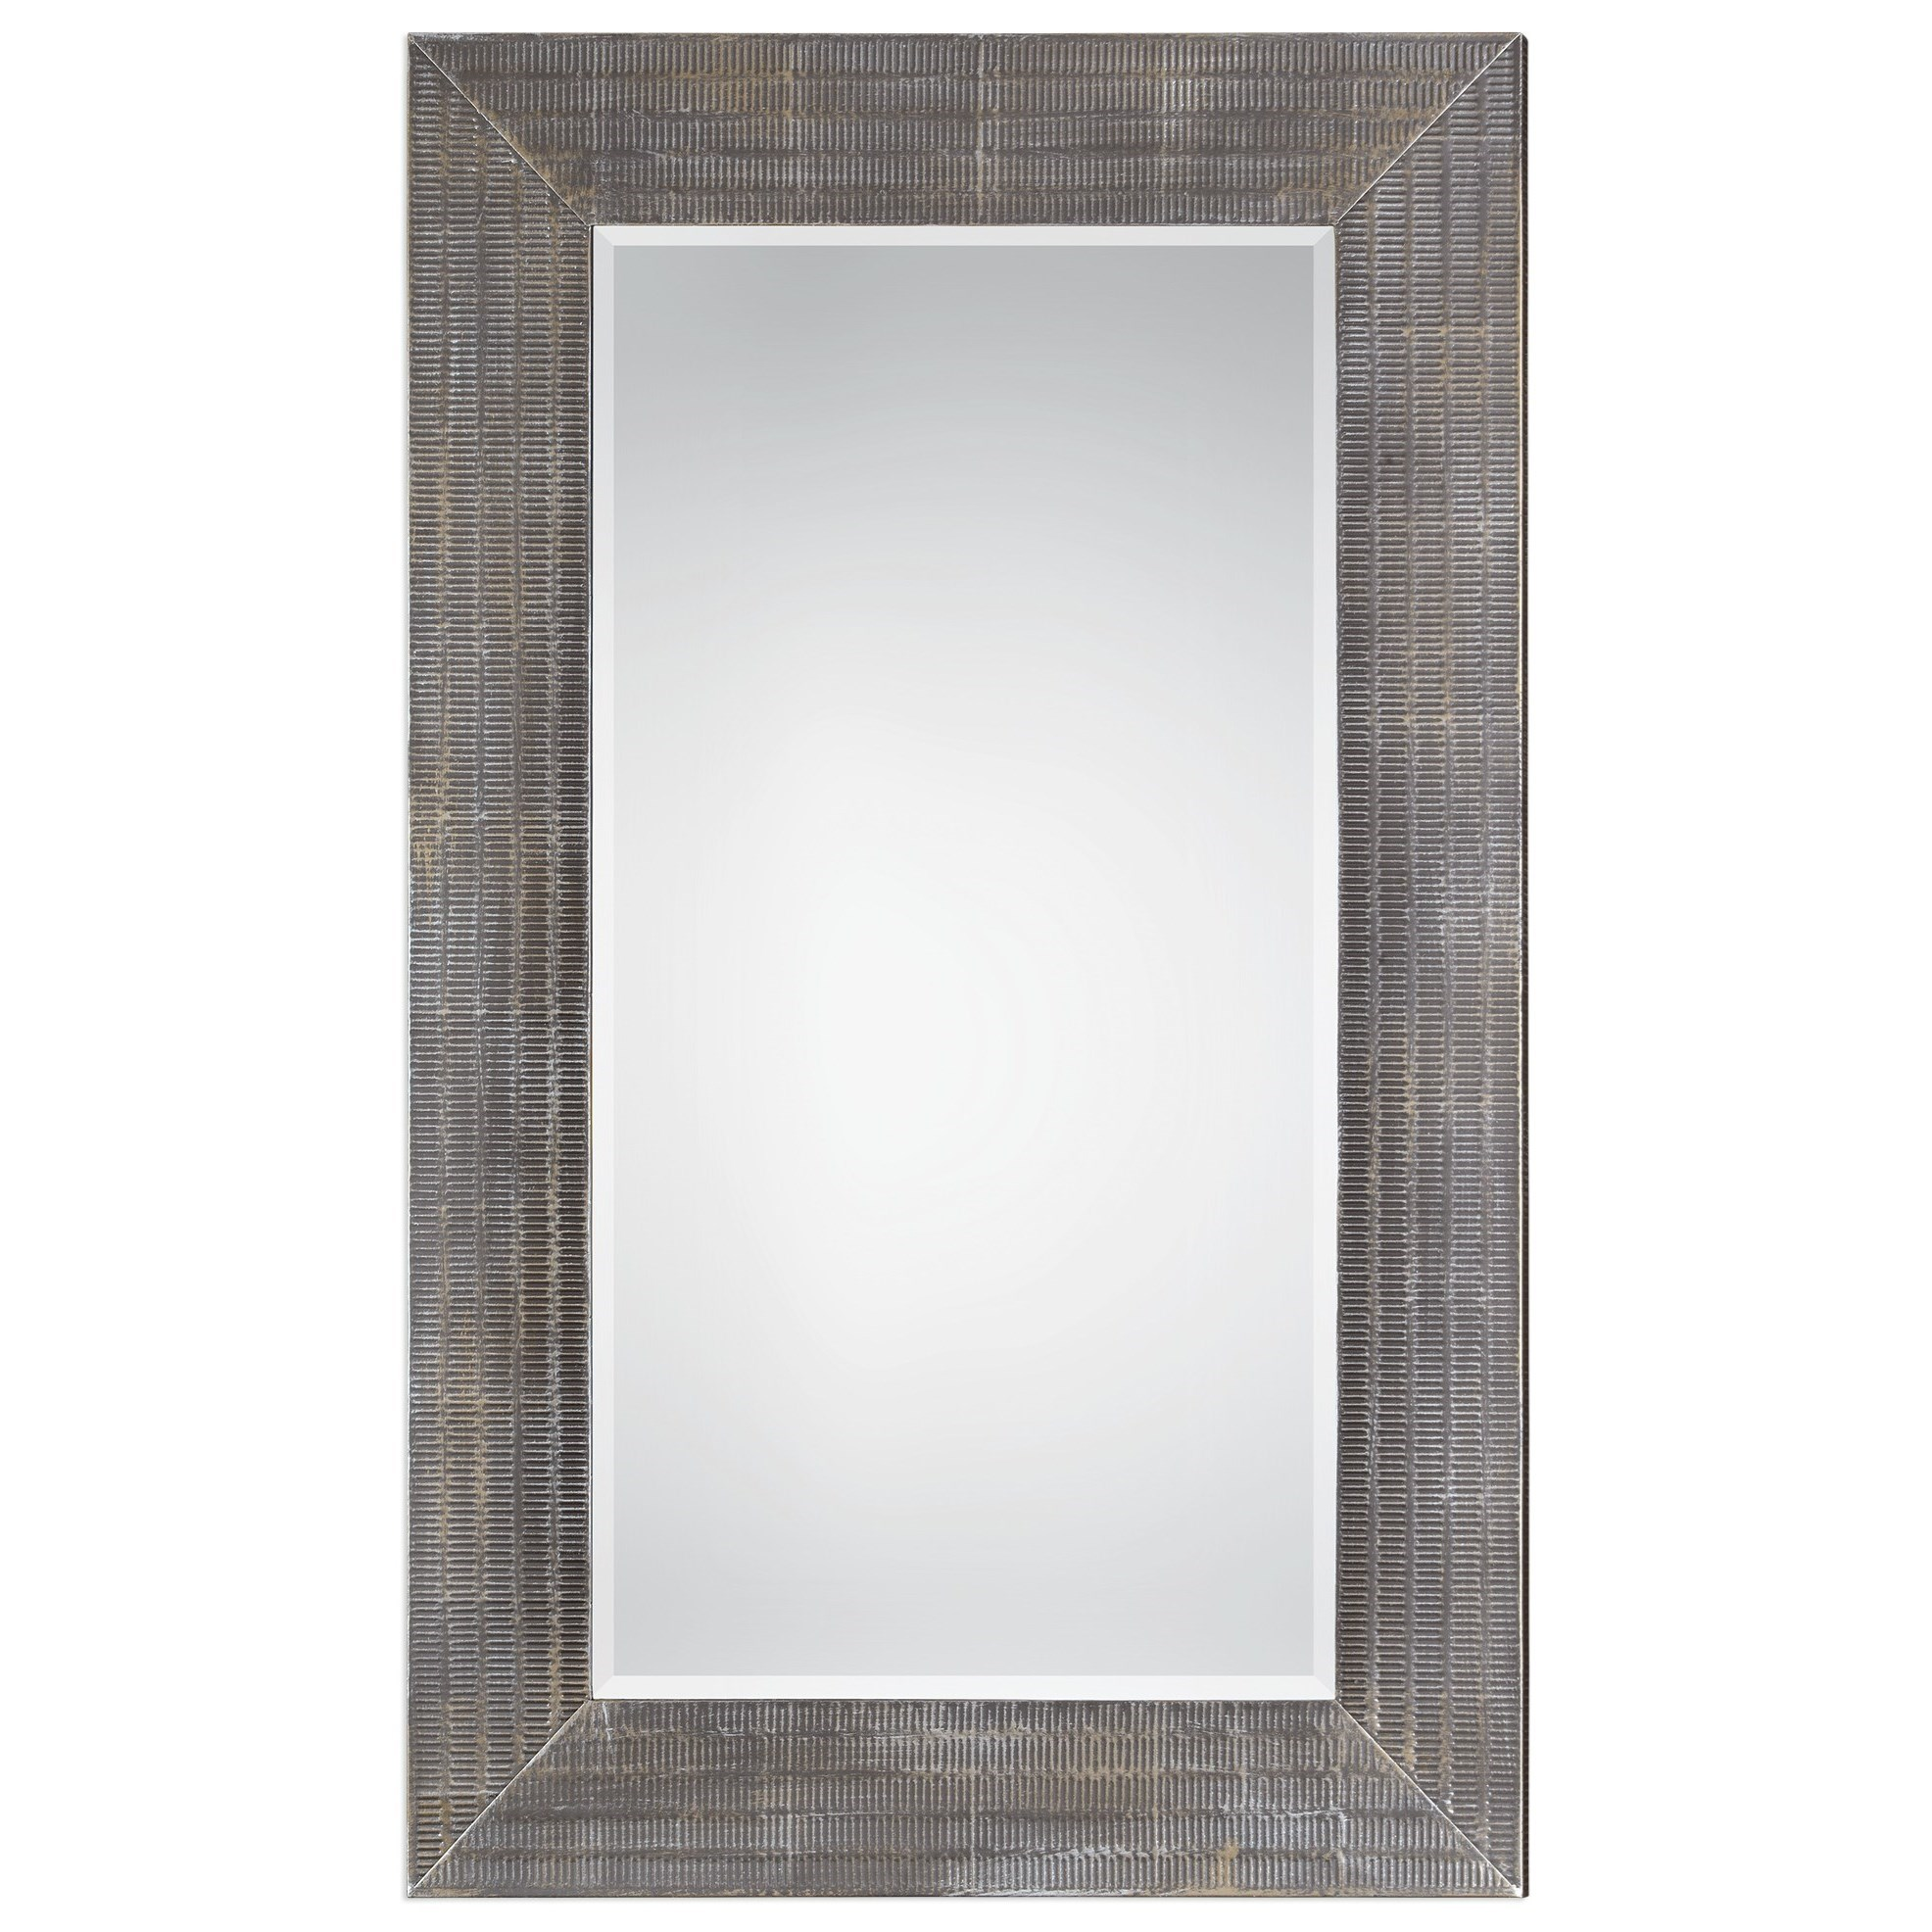 Uttermost Mirrors  Frazer Stone Gray Mirror - Item Number: 09162